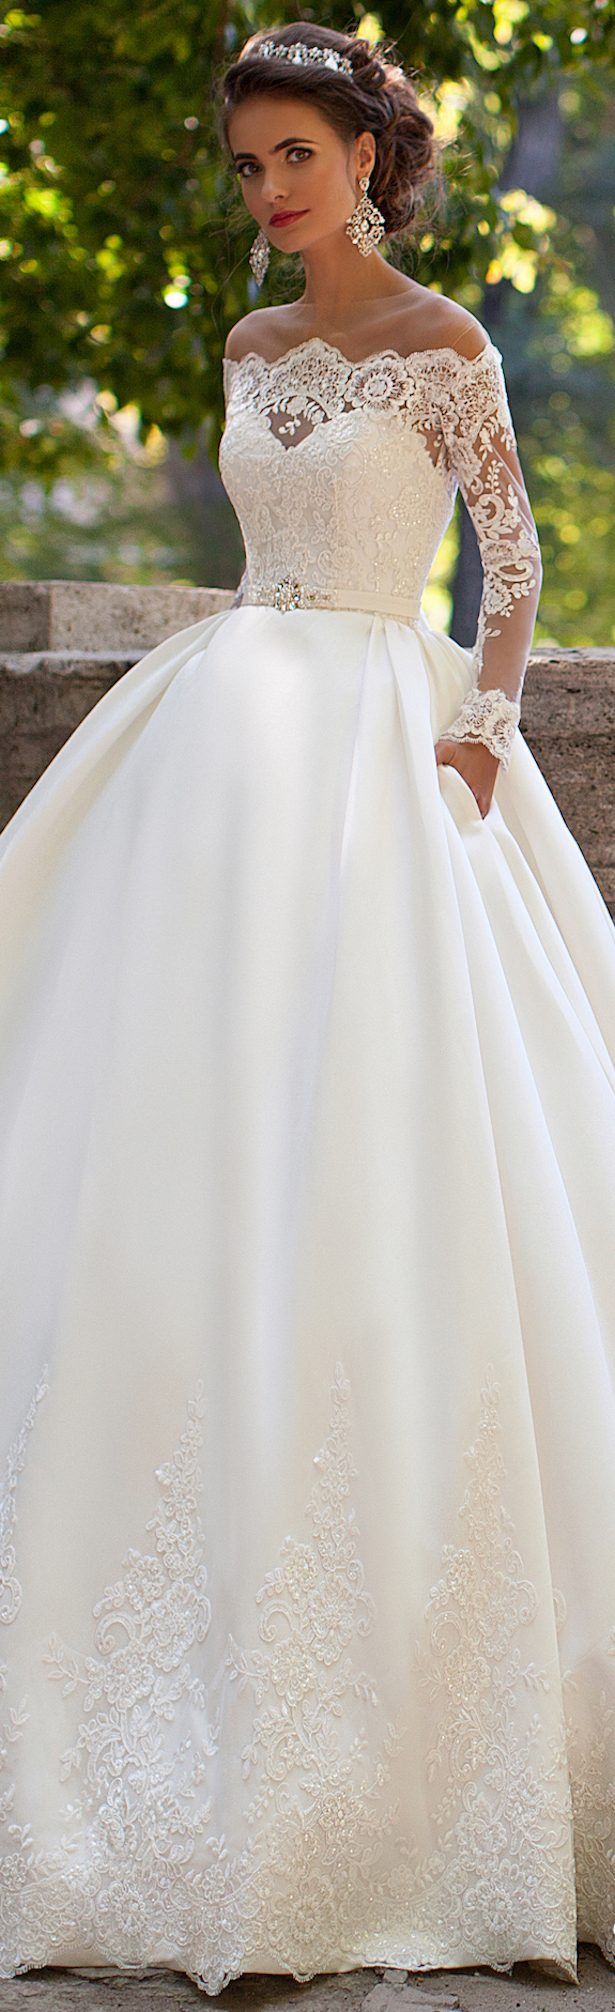 Best Wedding Dresses of 2016 - Belle The Magazine